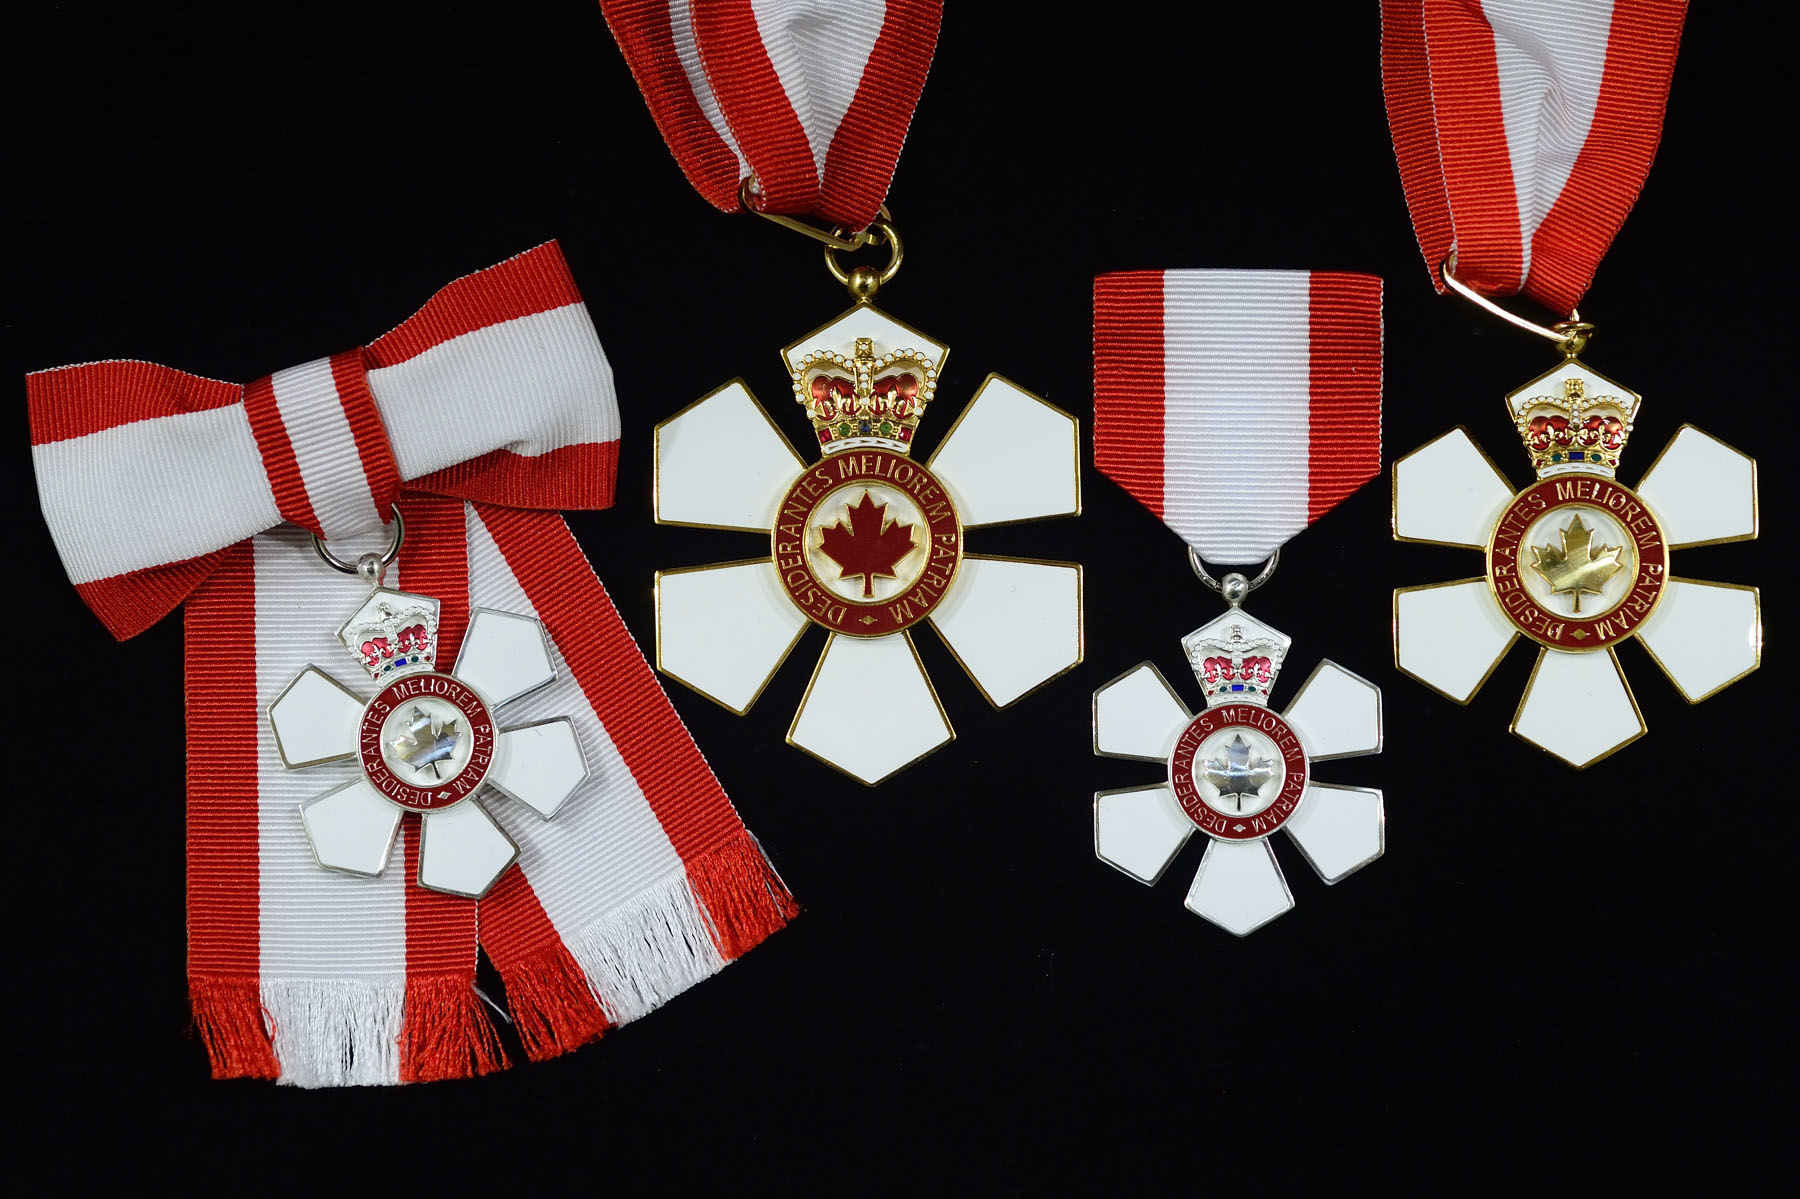 On November 17, 2016, the Governor General invested 42 recipients in the Order of Canada, one of our country's highest honour, during an investiture ceremony at Rideau Hall.